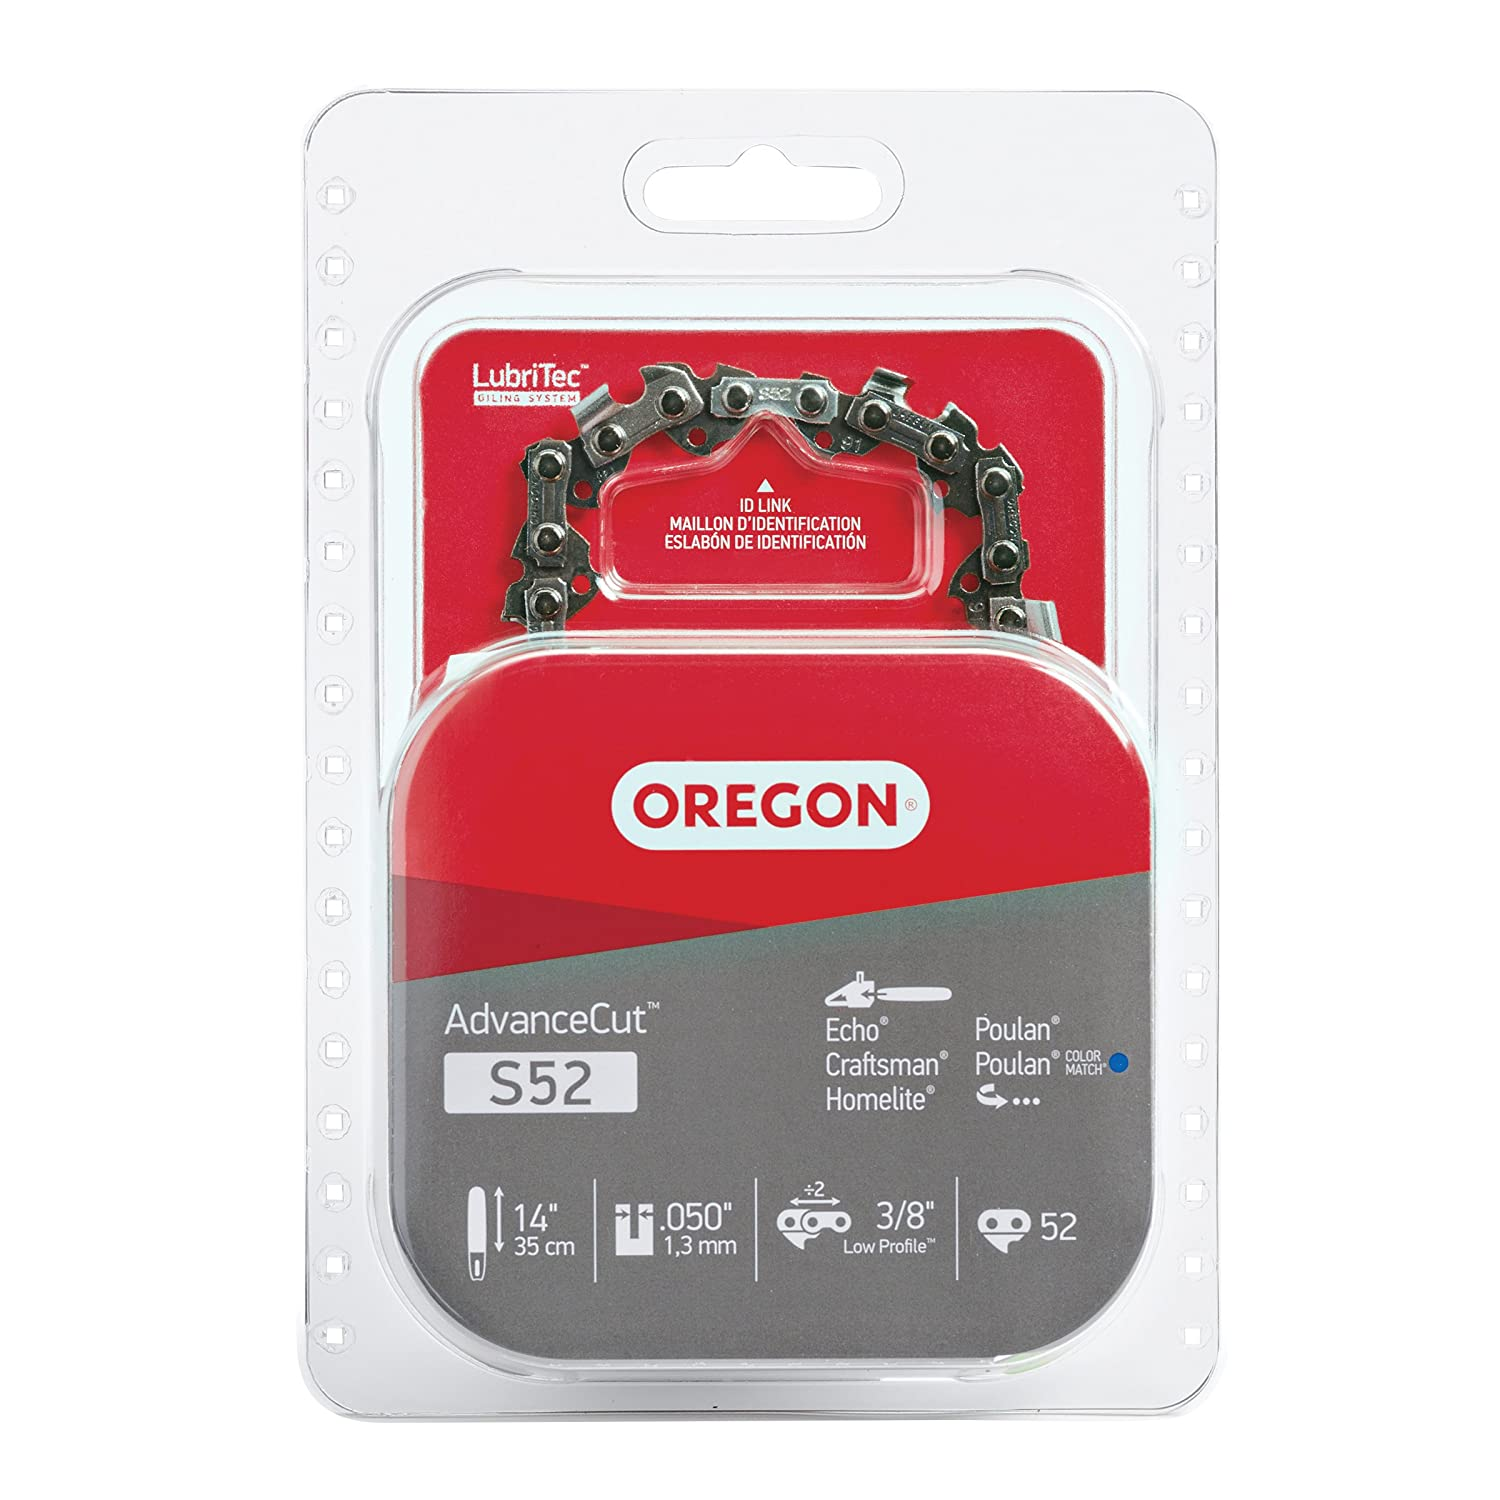 Oregon S52 AdvanceCut 14-Inch Chainsaw Chain Fits Craftsman, Echo, Homelite, Poulan